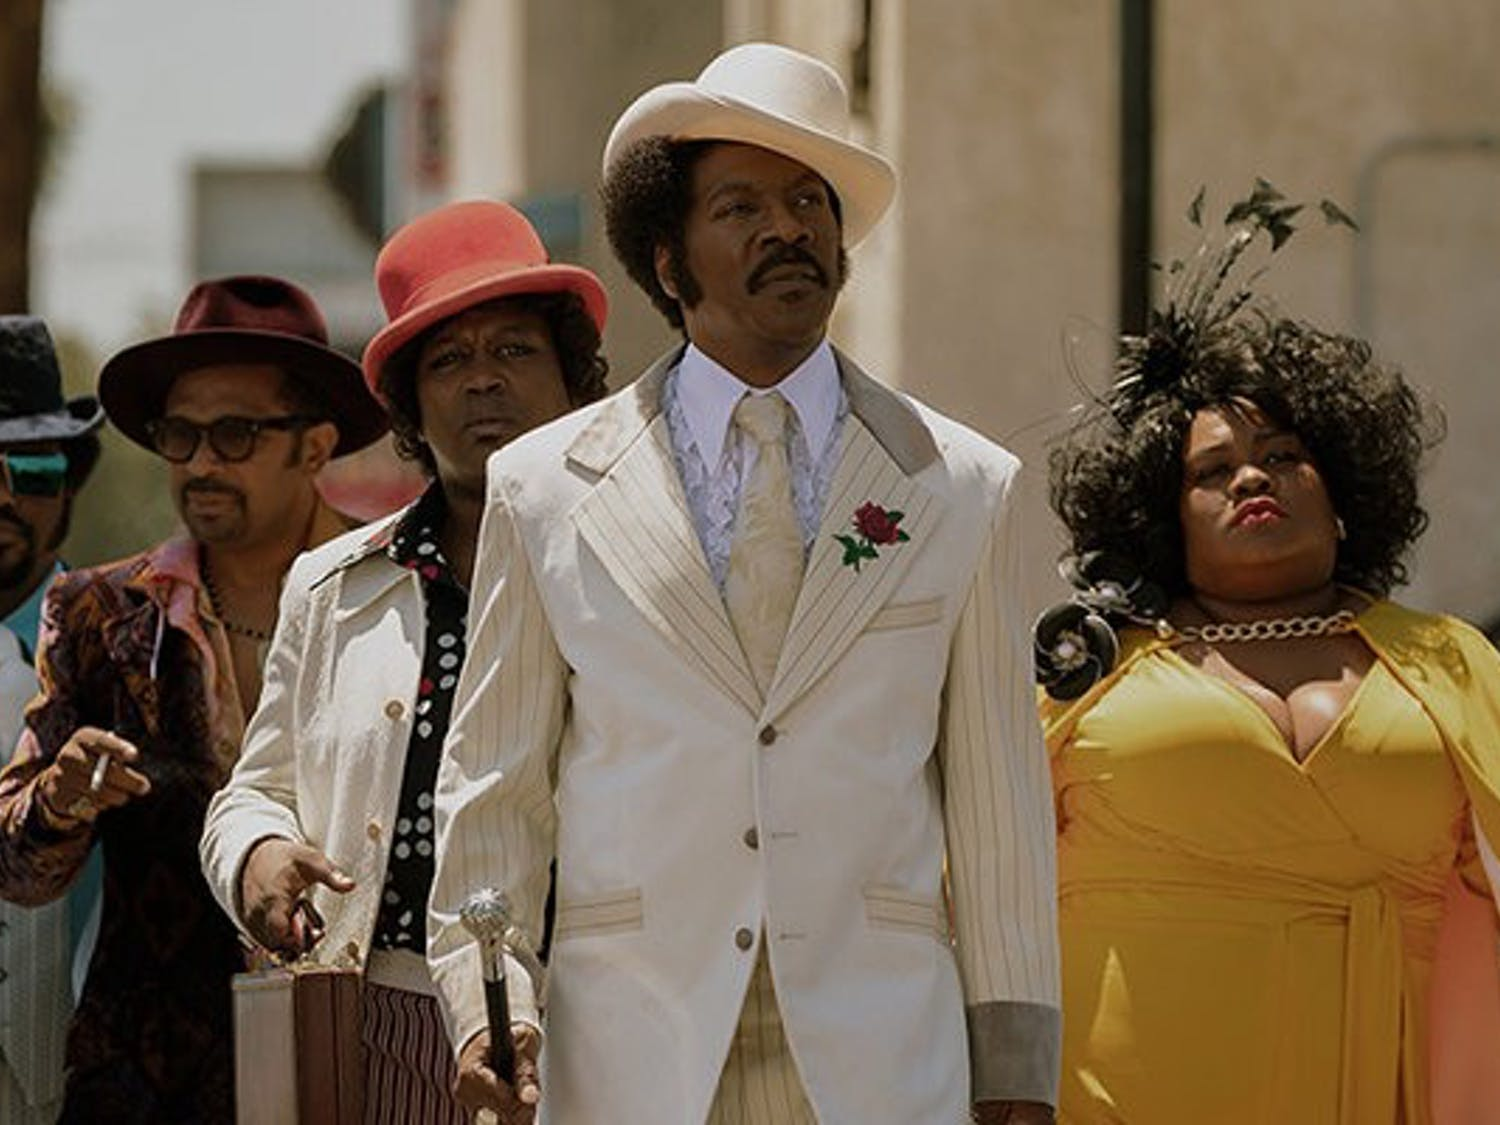 Eddie Murphy stars as entertainment icon Rudy Ray Moore in lazy Netflix film.